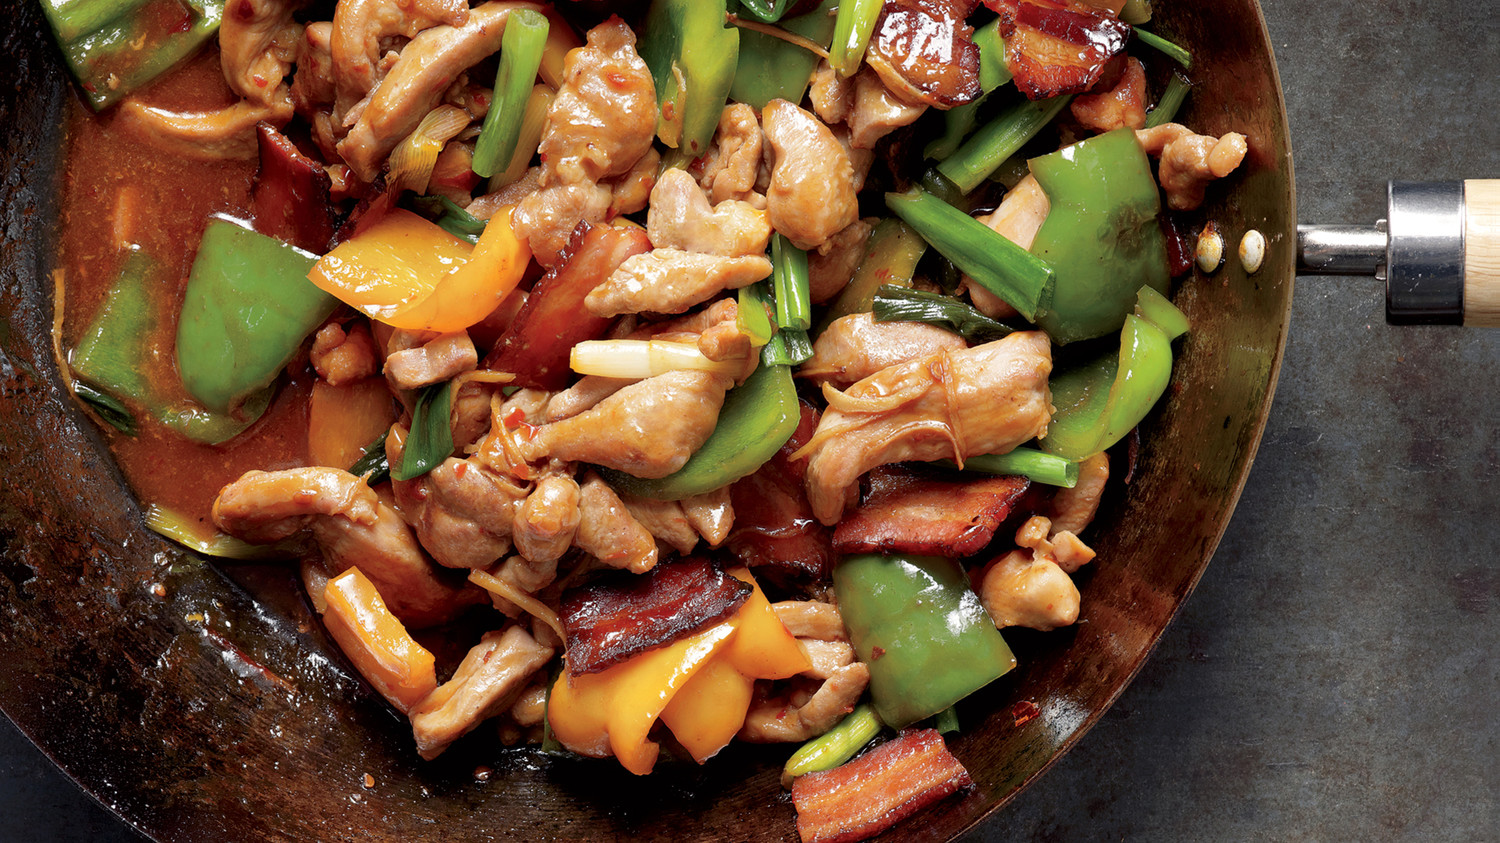 Spicy Turkey Thighs and Bacon Stir-Fry